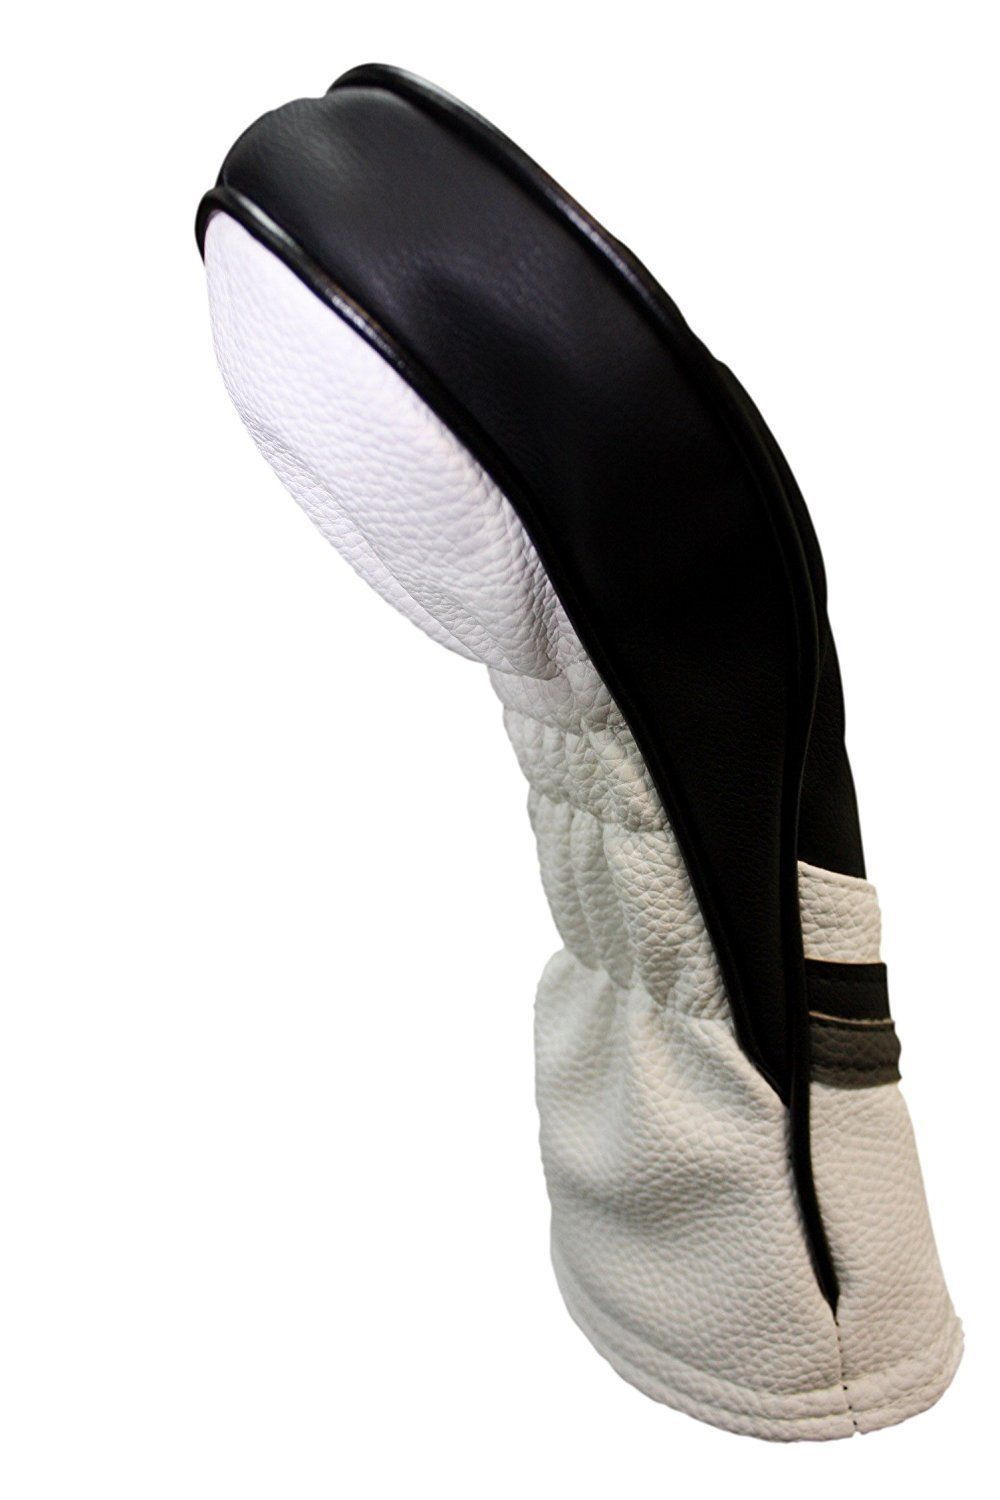 Majek Golf Headcover Black and White Leather Style #5 Fairway Wood Head Cover